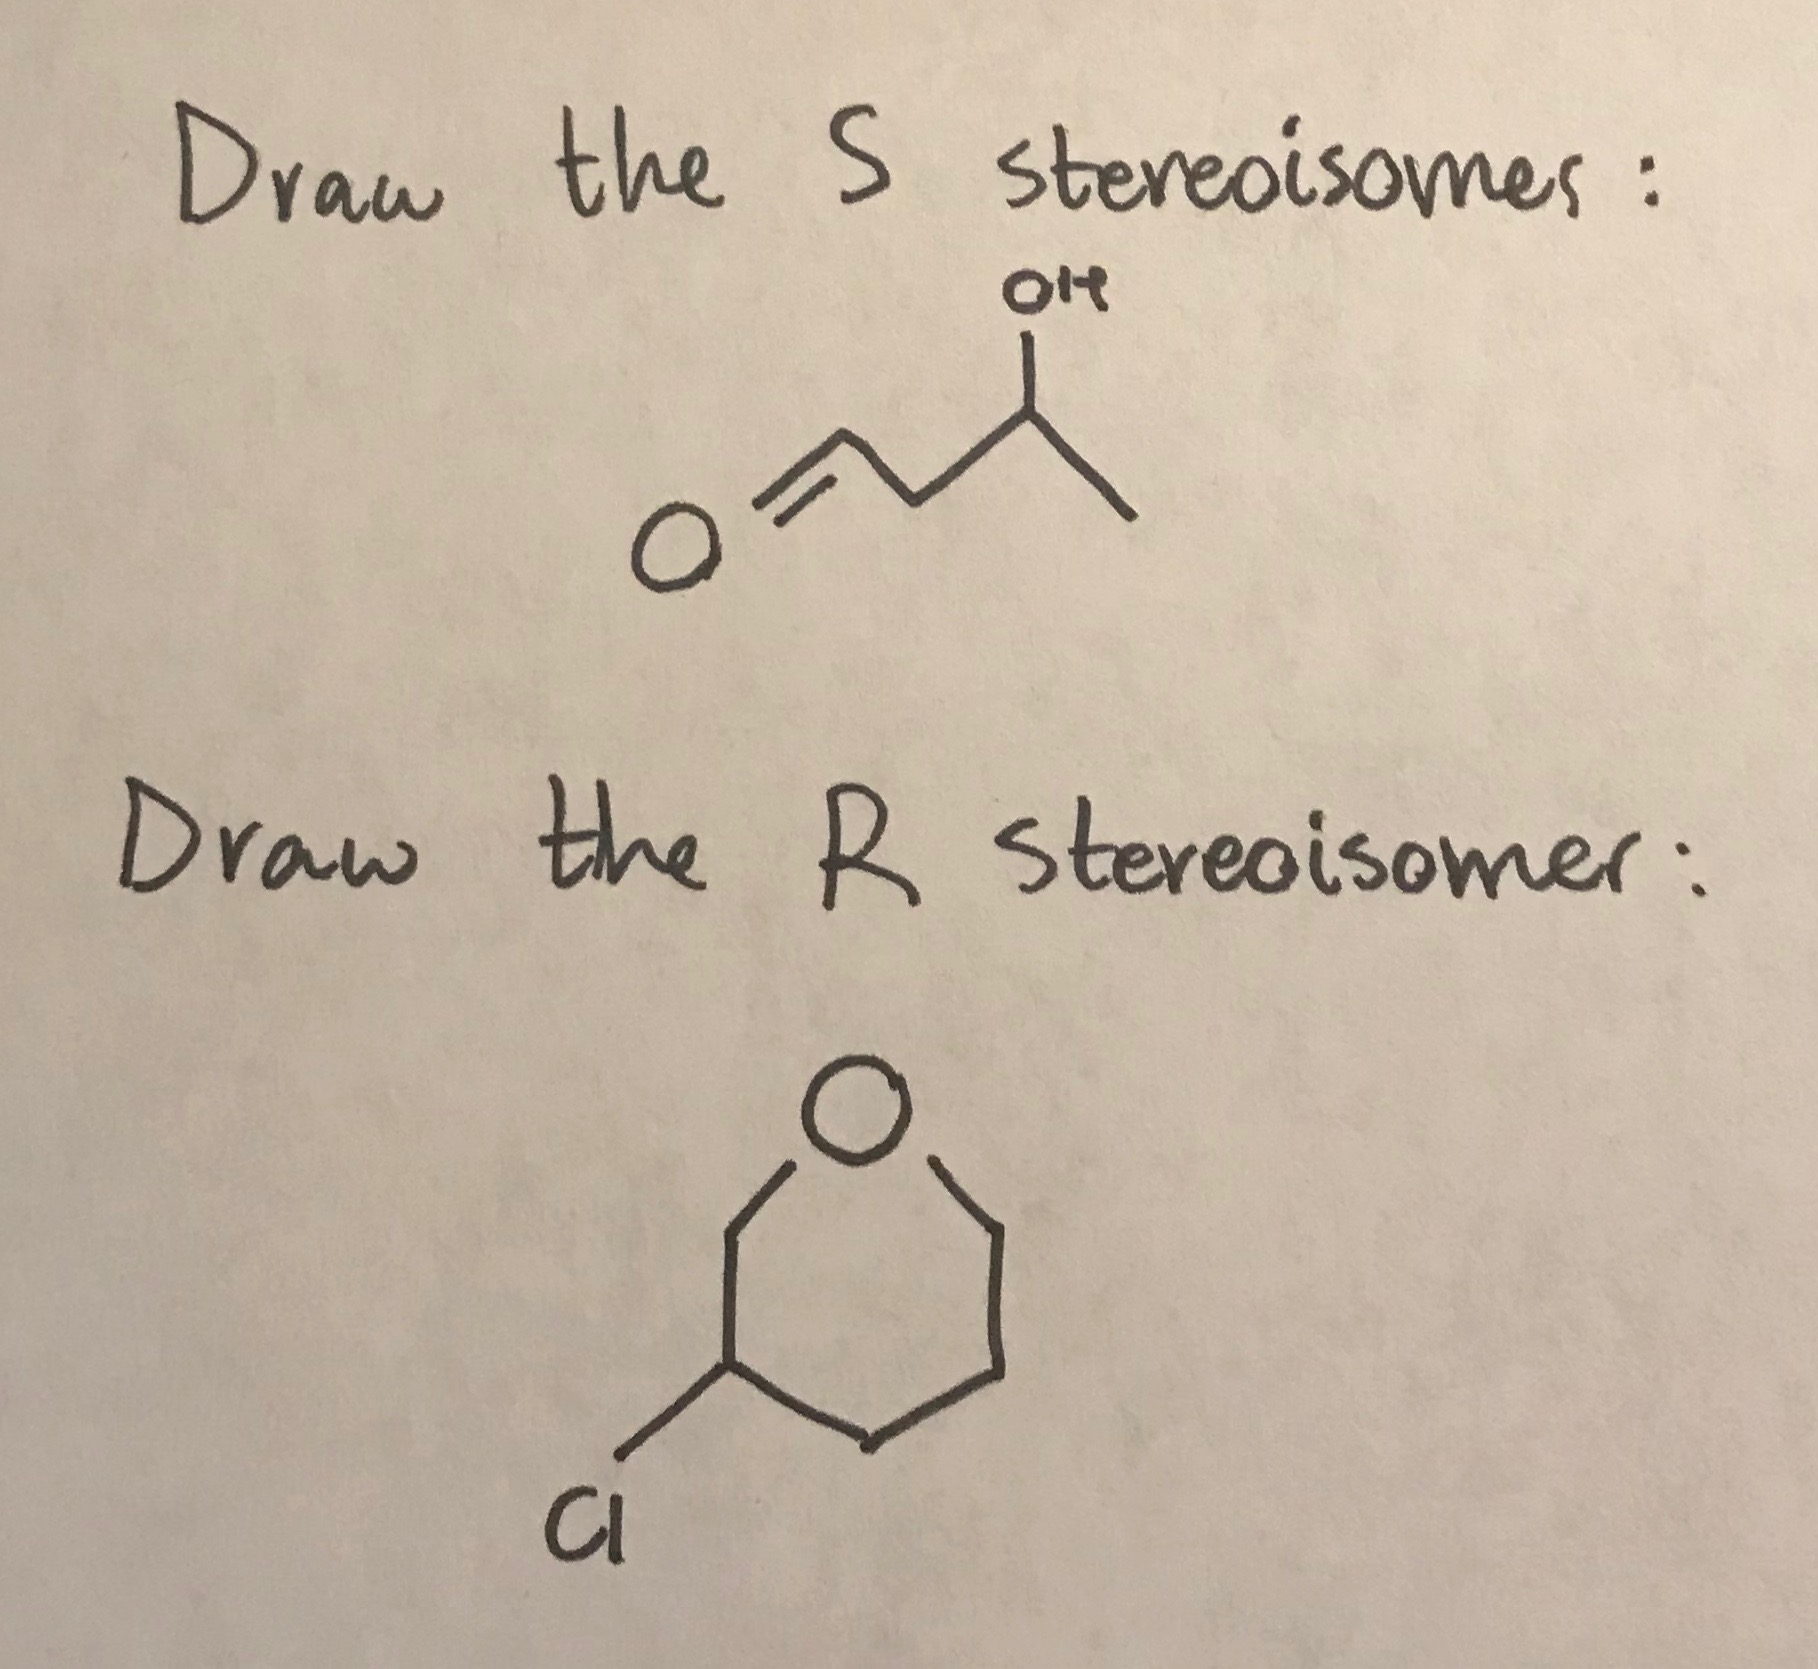 Draw the S stereoisomes : Of ont Draw the R stereoisomer